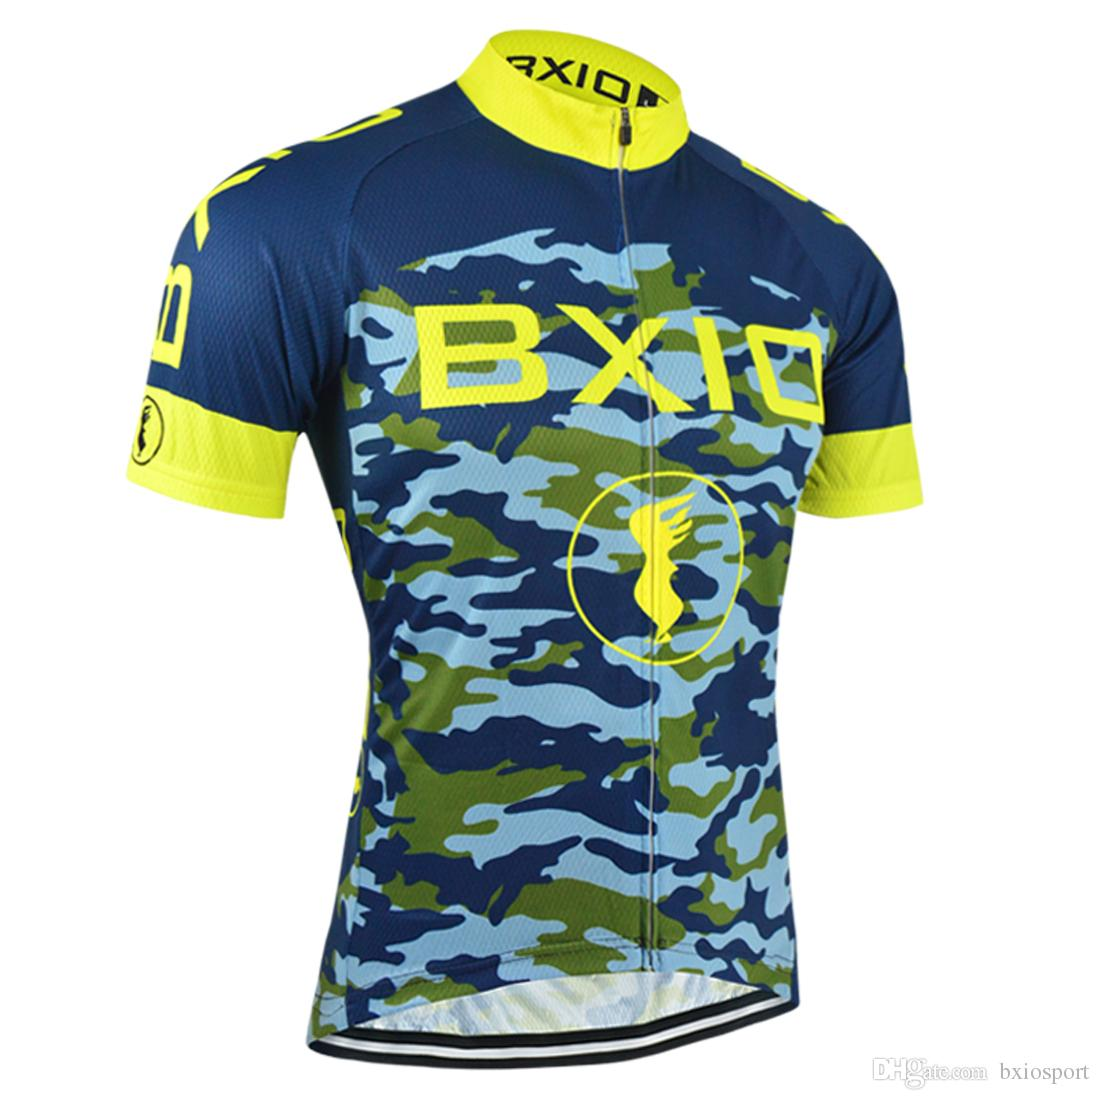 BXIO Cool Men Cycling Shirts Outdoor Sport Bike Jersey 3 Rear Pockets  Camouflage Cycling Jersey Ropa Ciclismo Brand Recommend BX 052 Online Tops  Cool ... 94cee5fd2